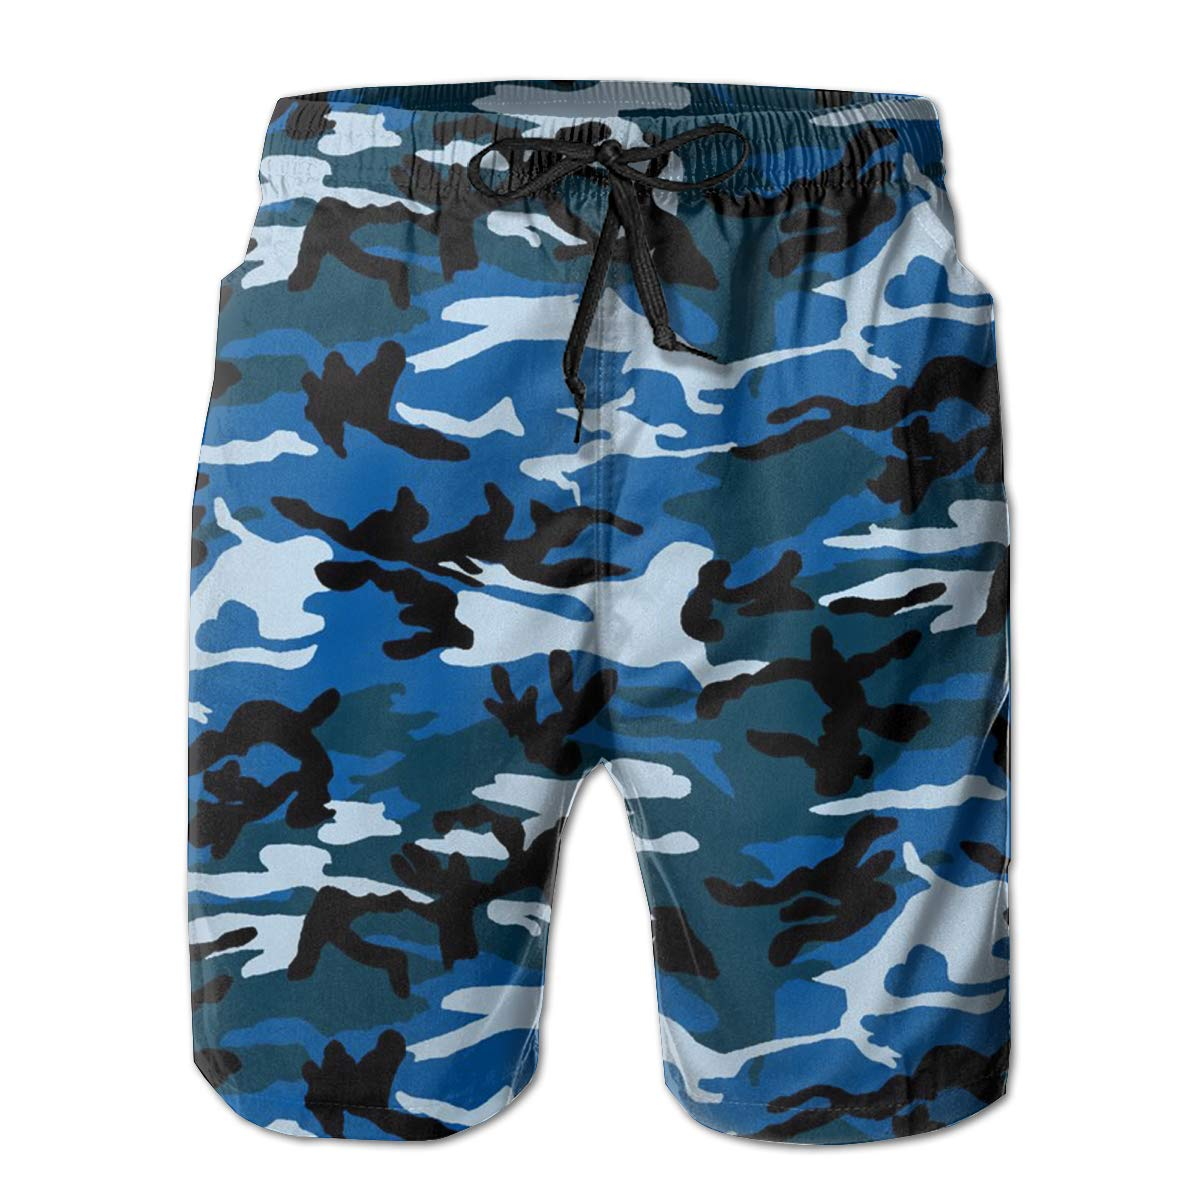 JF-X Navy Camouflage Mens Summer Beach Surf Board Shorts Quick Dry Swimming Trunks Casual Loose Sleep Short Pants